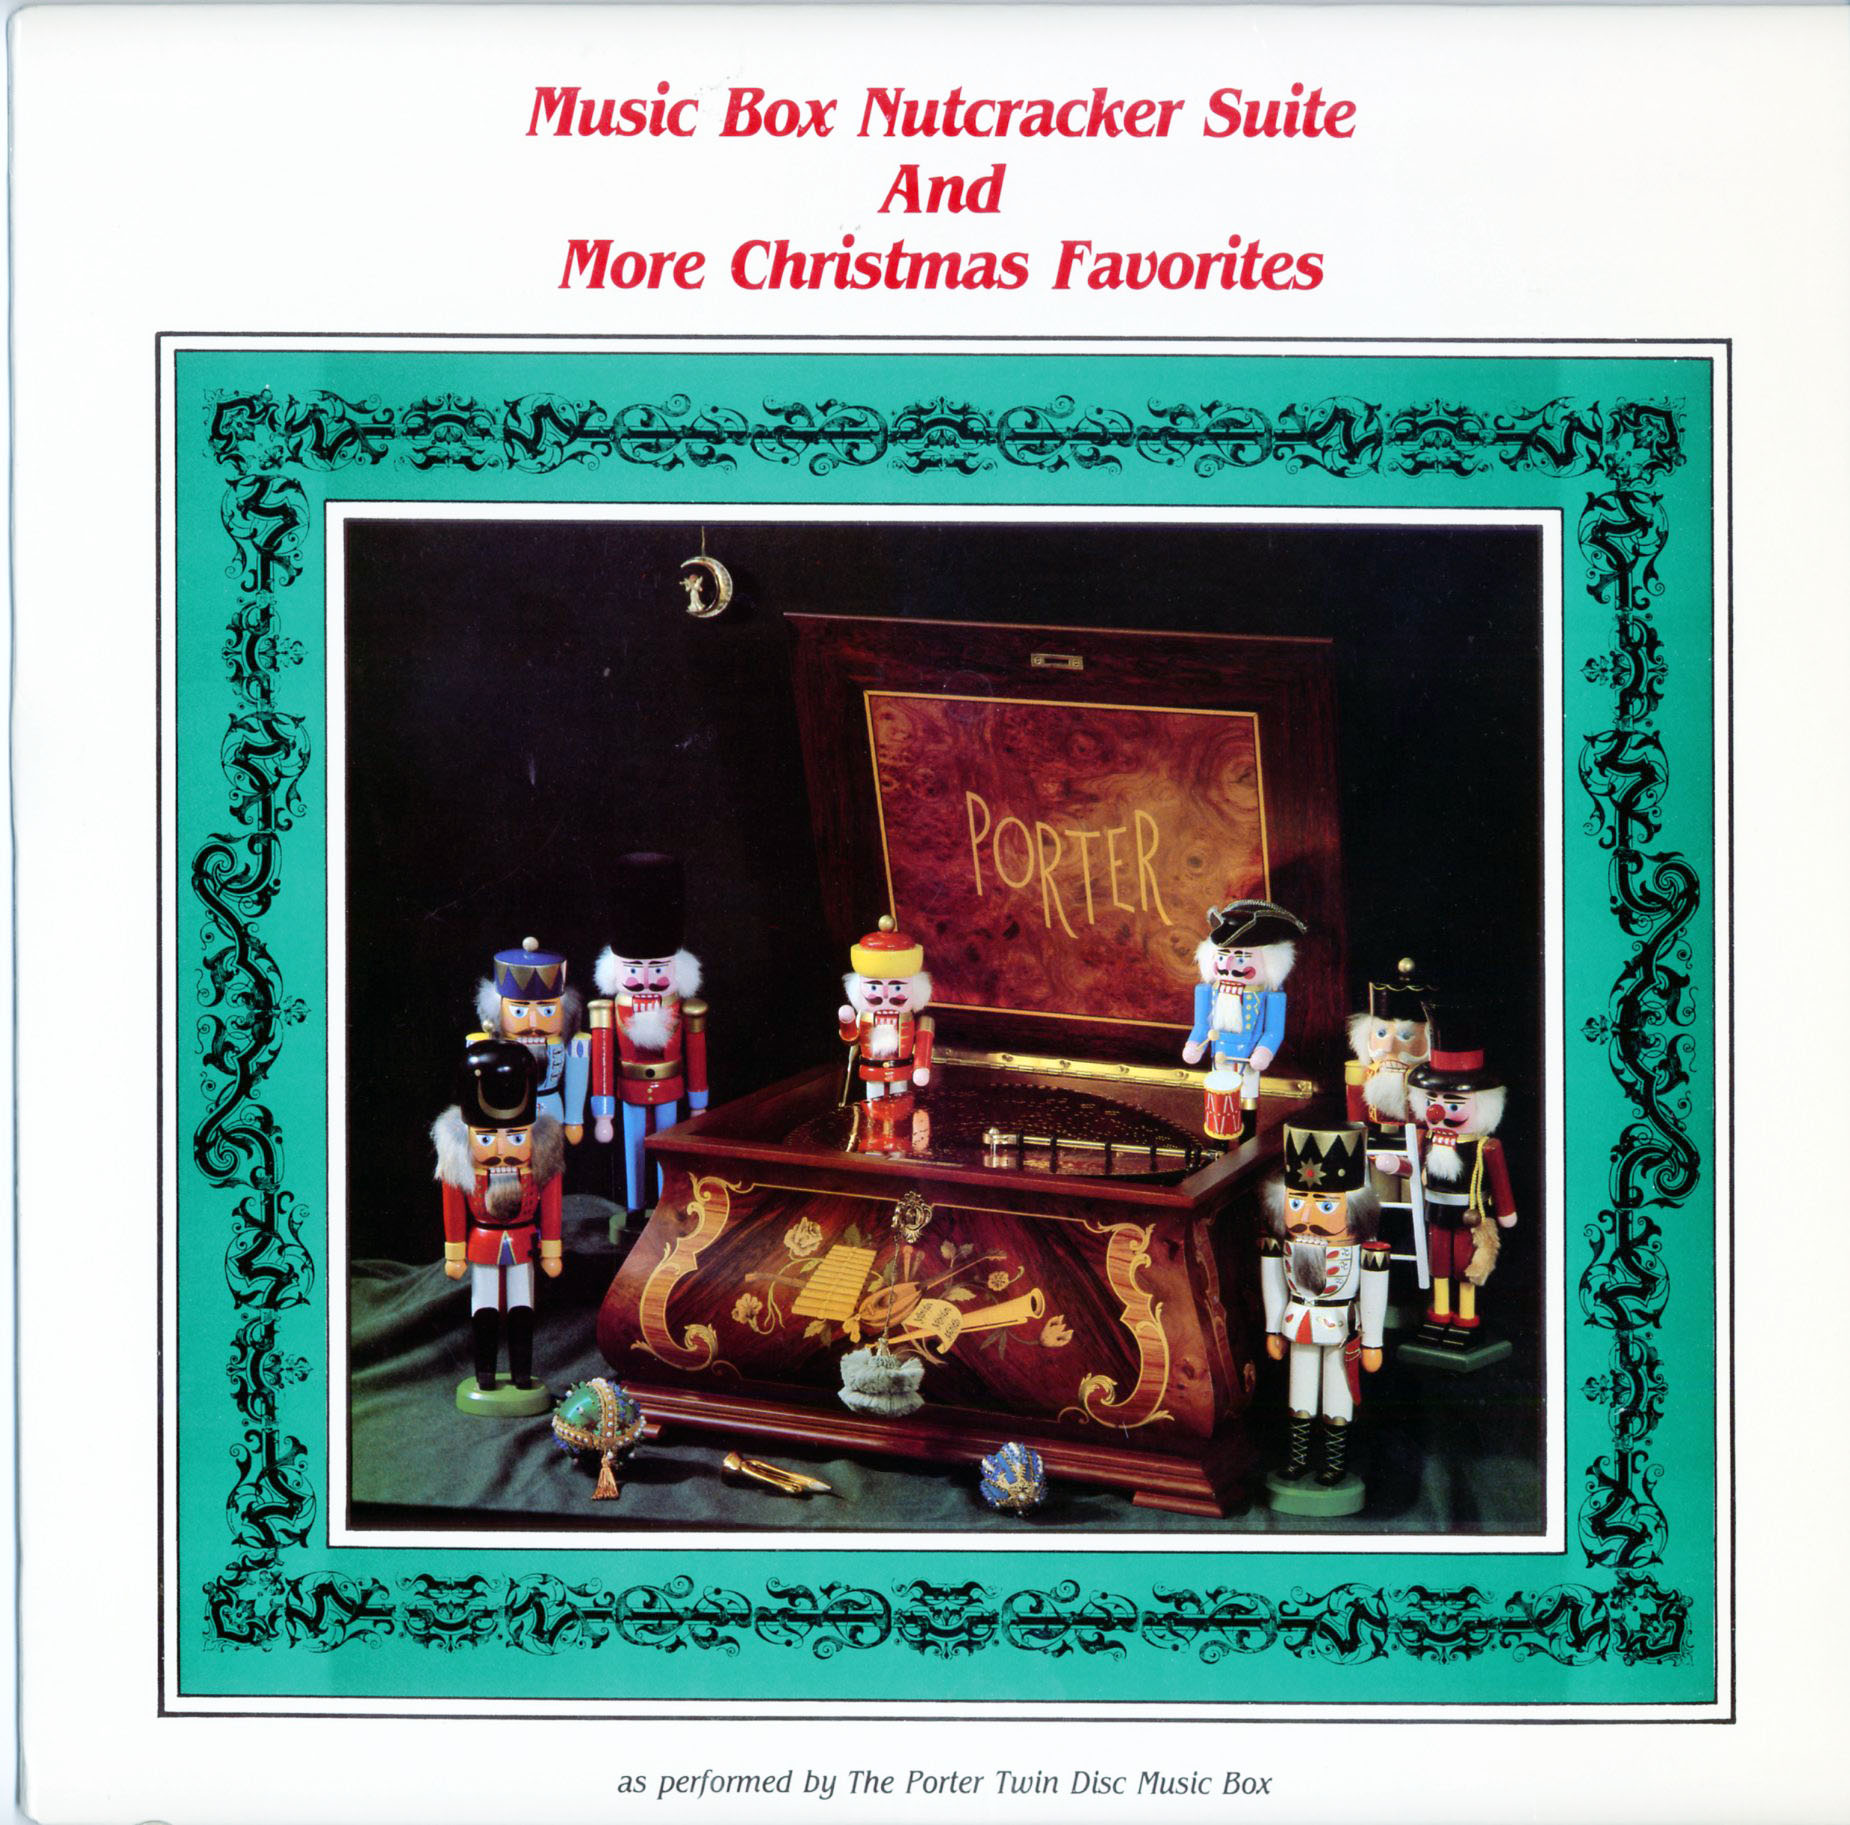 Le Meilleur Porter Twin Disc Music Box Music Box Nutcracker Suite Ce Mois Ci